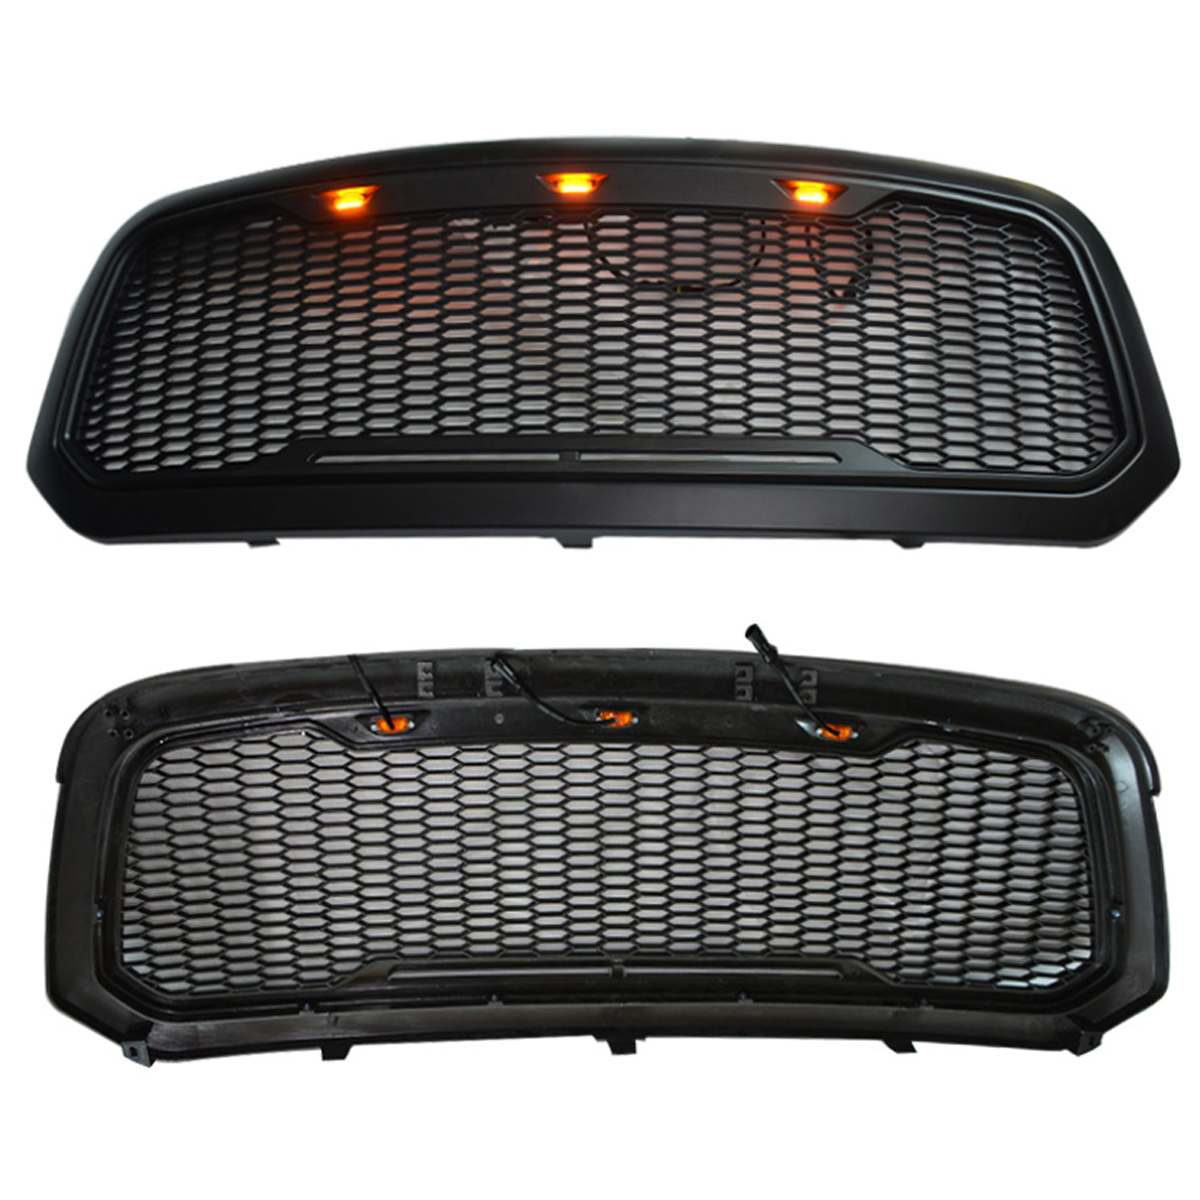 Racing Grille For Dodge ram 1500 2013-2018 with led light Replacement Front Mesh Grille Shell Black Auto Accessories